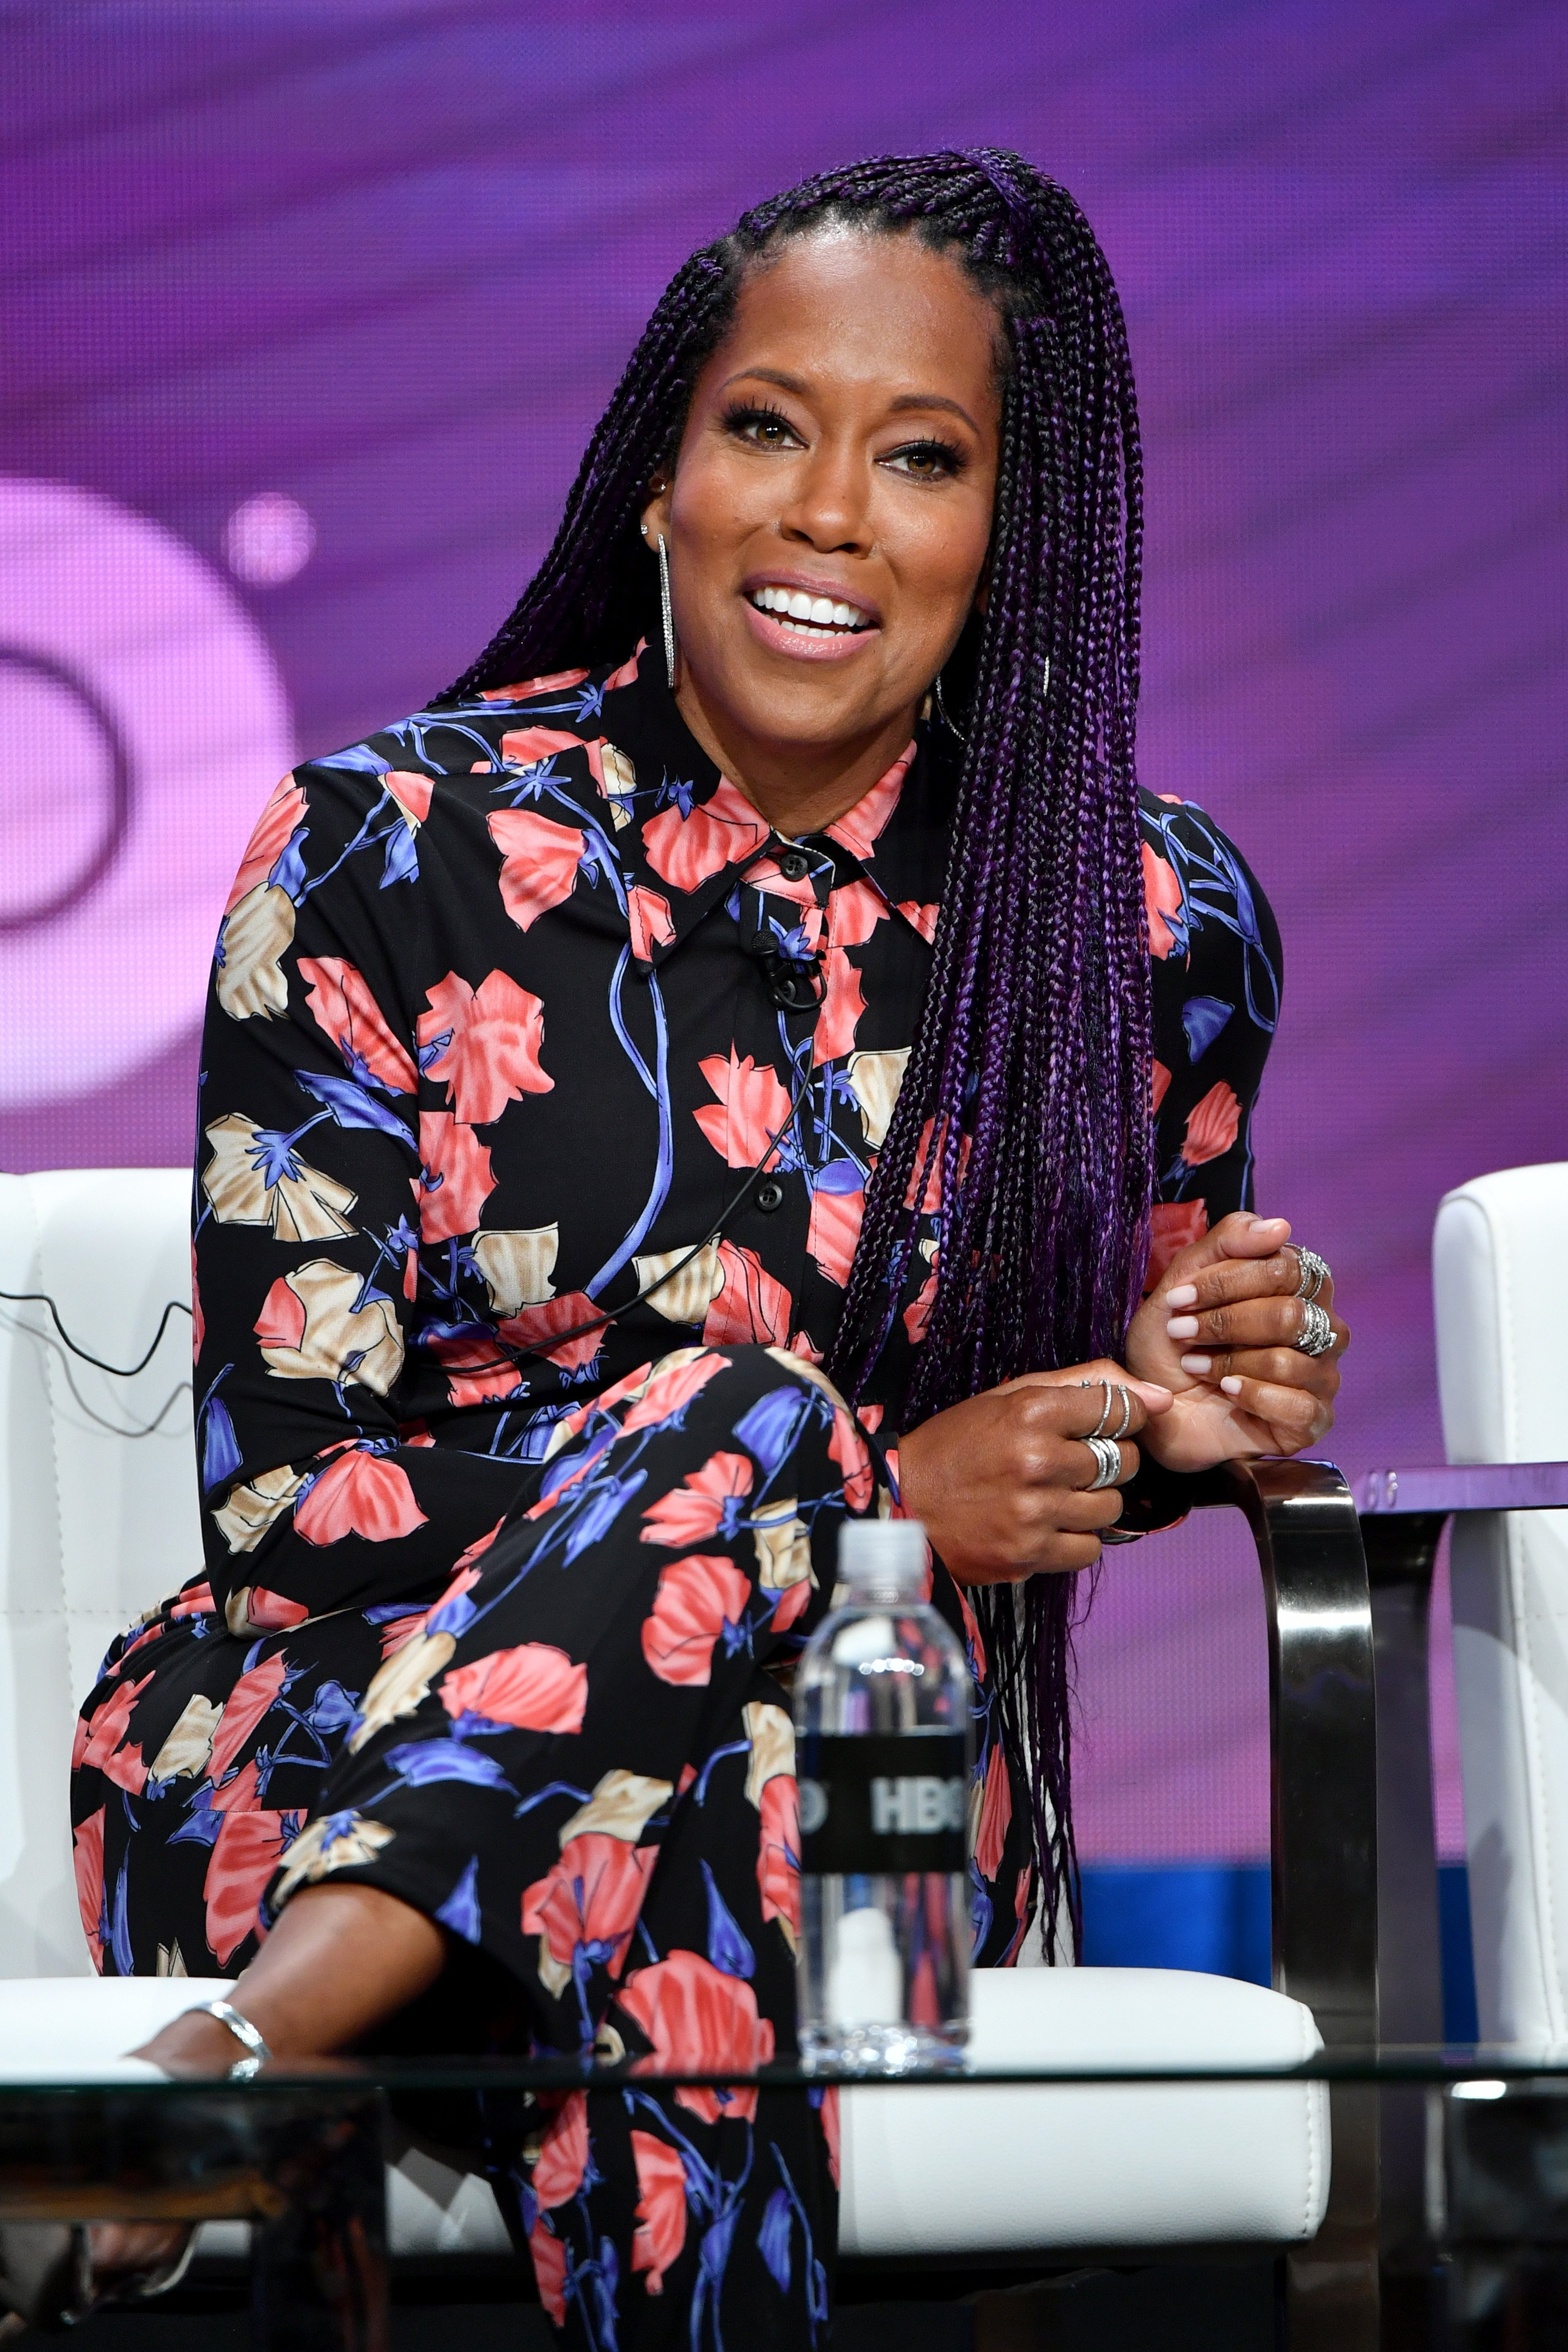 Regina King of 'Watchmen' speaks during the HBO segment of the Summer 2019 Television Critics Association on July 24, 2019.   Photo: GettyImages